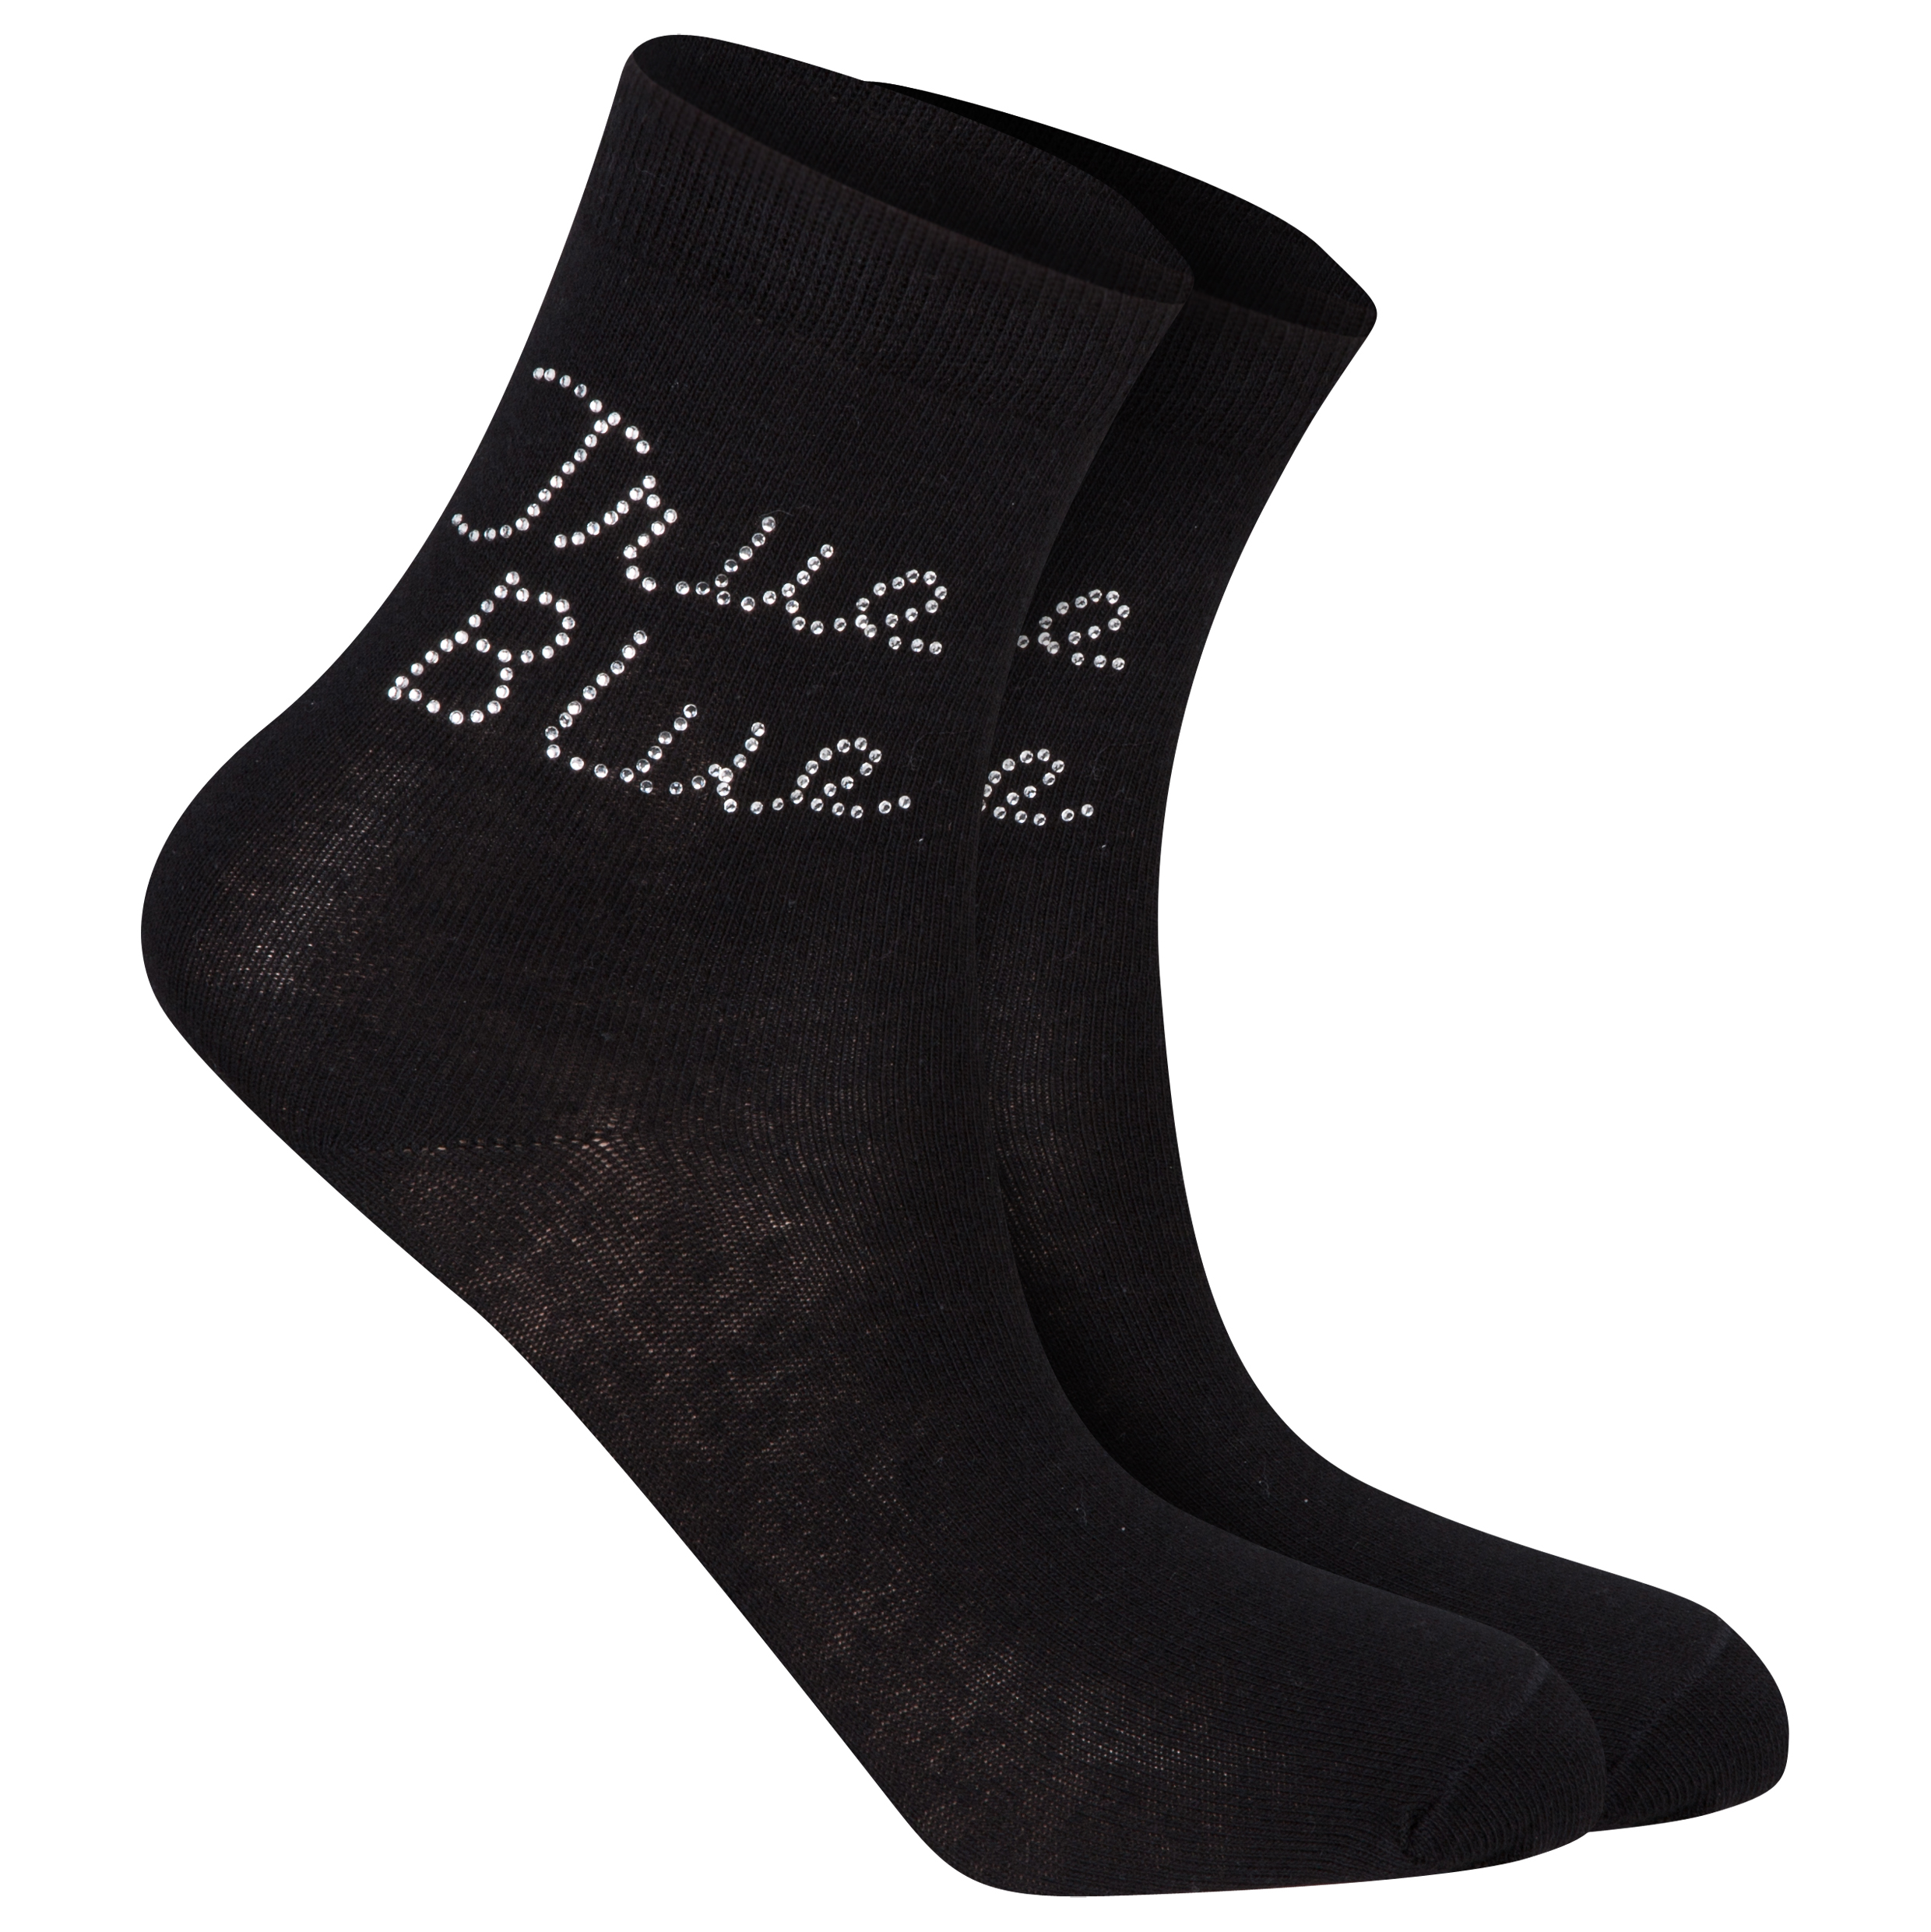 Manchester City Diamante Socks - Womens Black